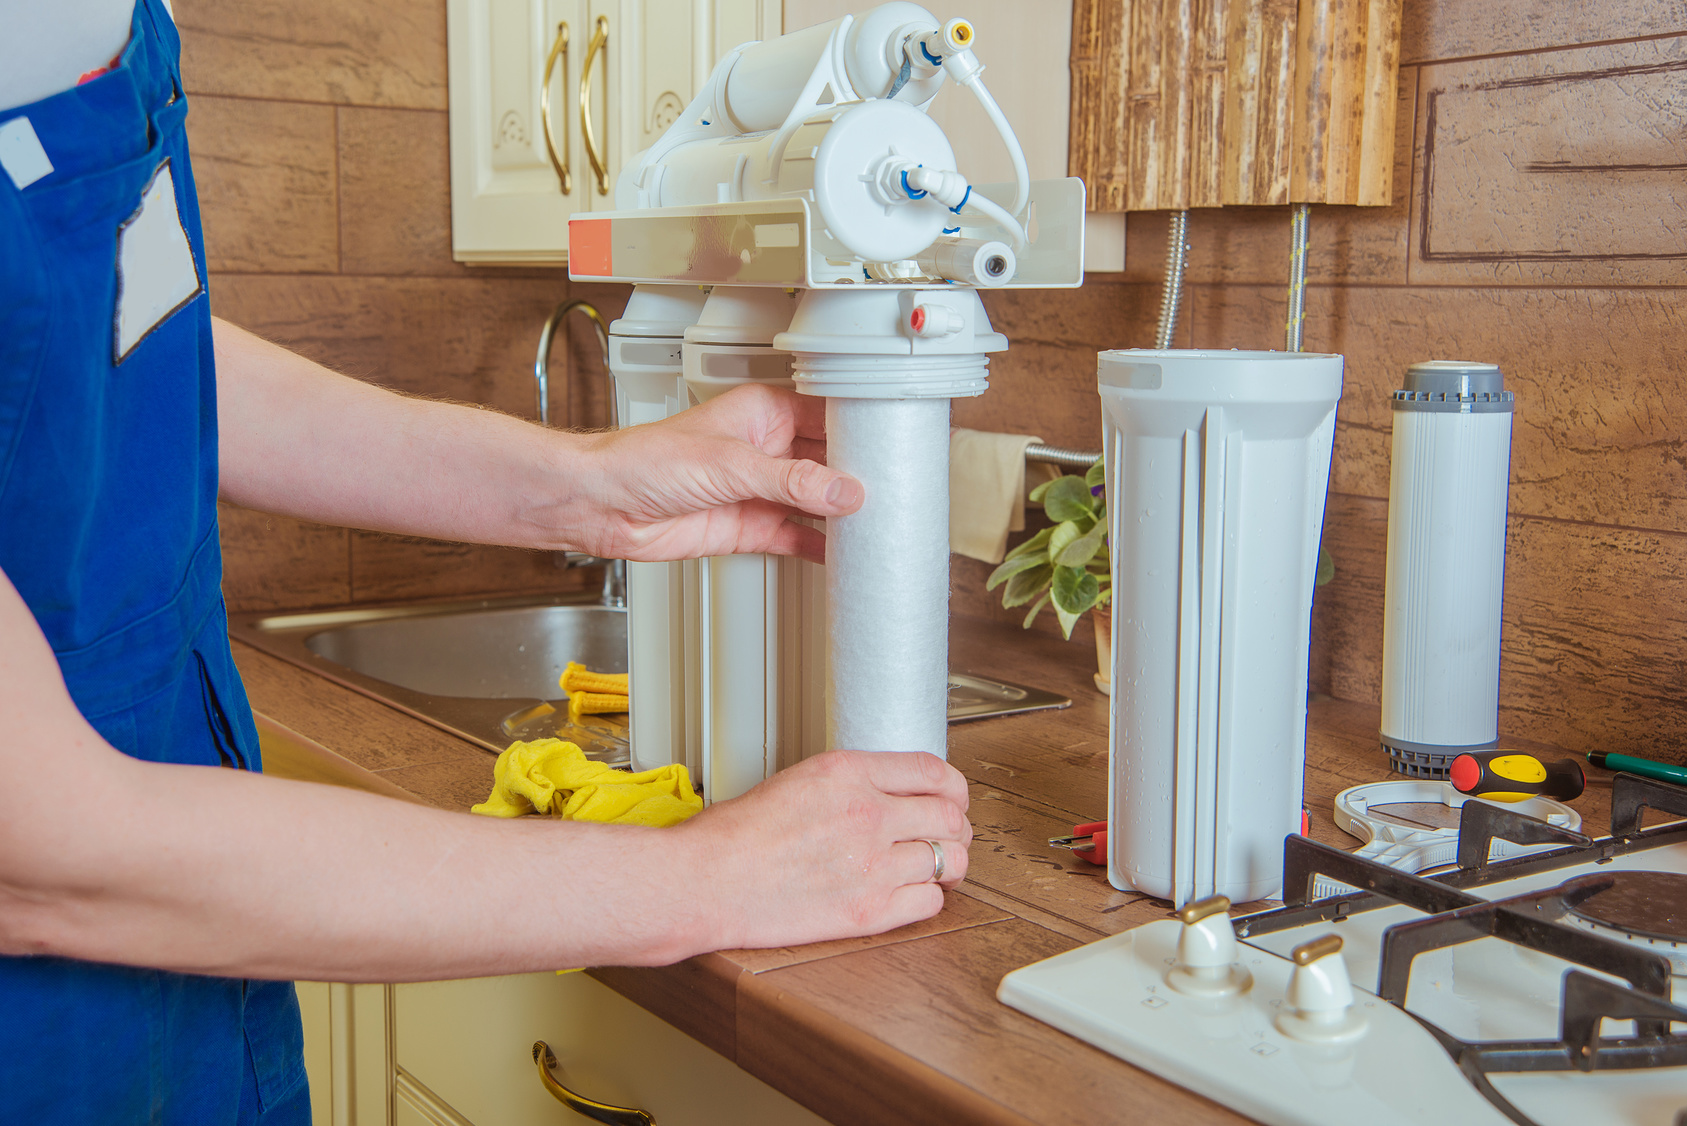 plumber installing new water filter in the kitchen